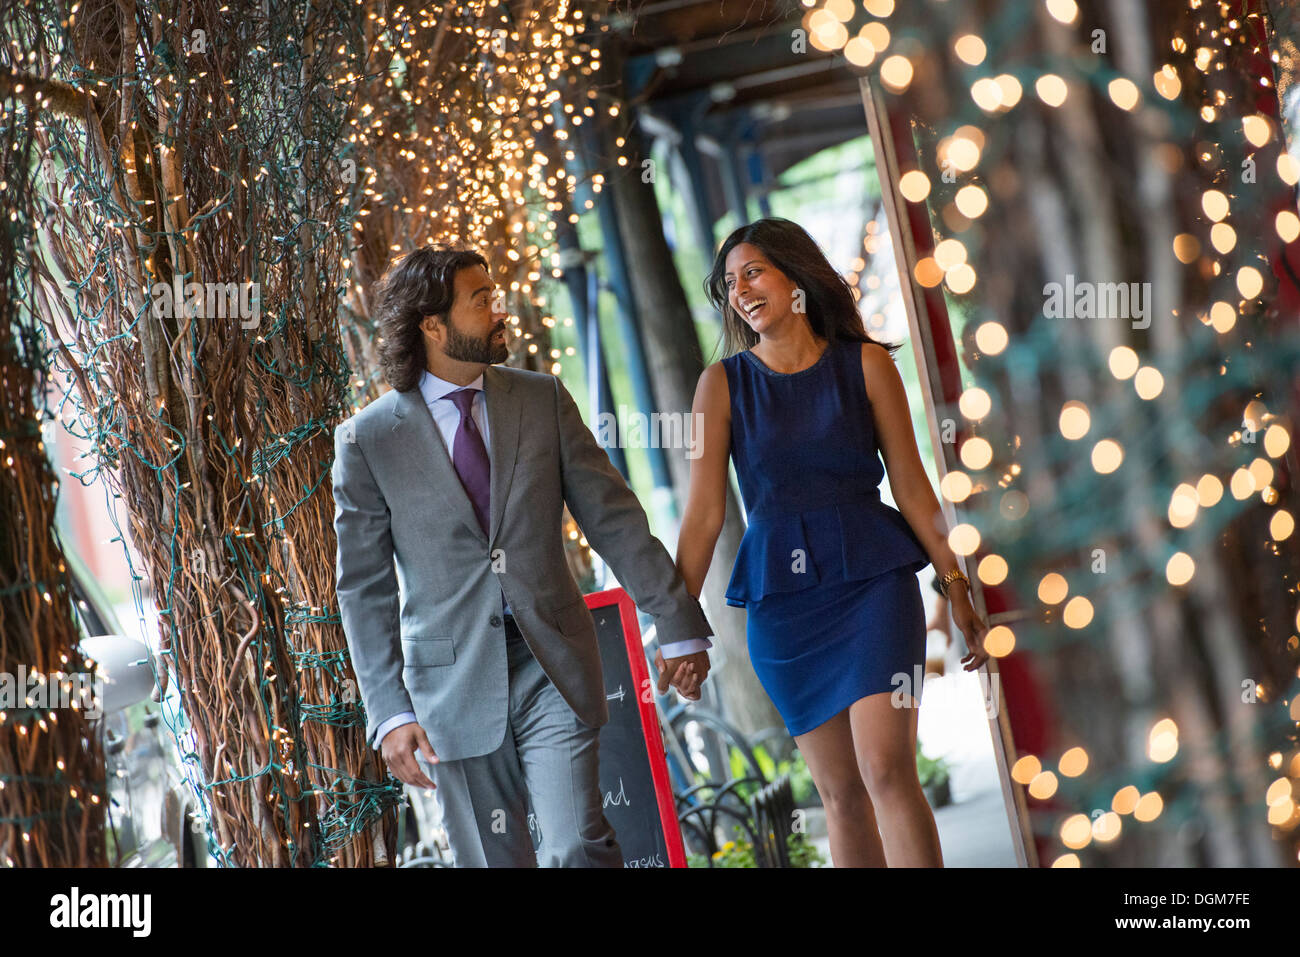 Business people. Two people, a man and woman holding hands and walking under a pergola, lit with fairy lights. - Stock Image